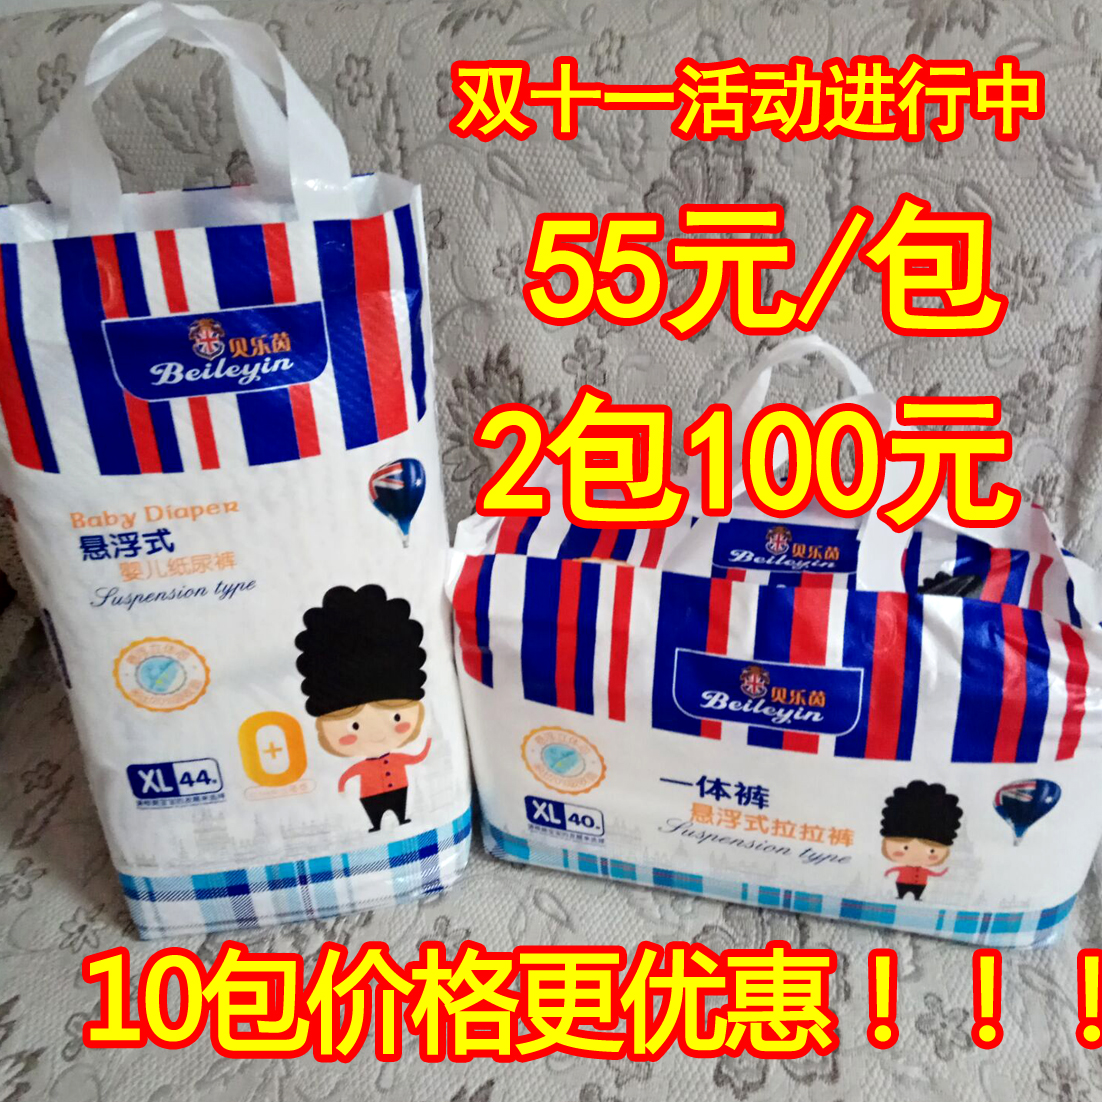 Package post beiloyin summer diaper and Labrador diaper ultra thin and dry baileyin suspension smlxlxxxl